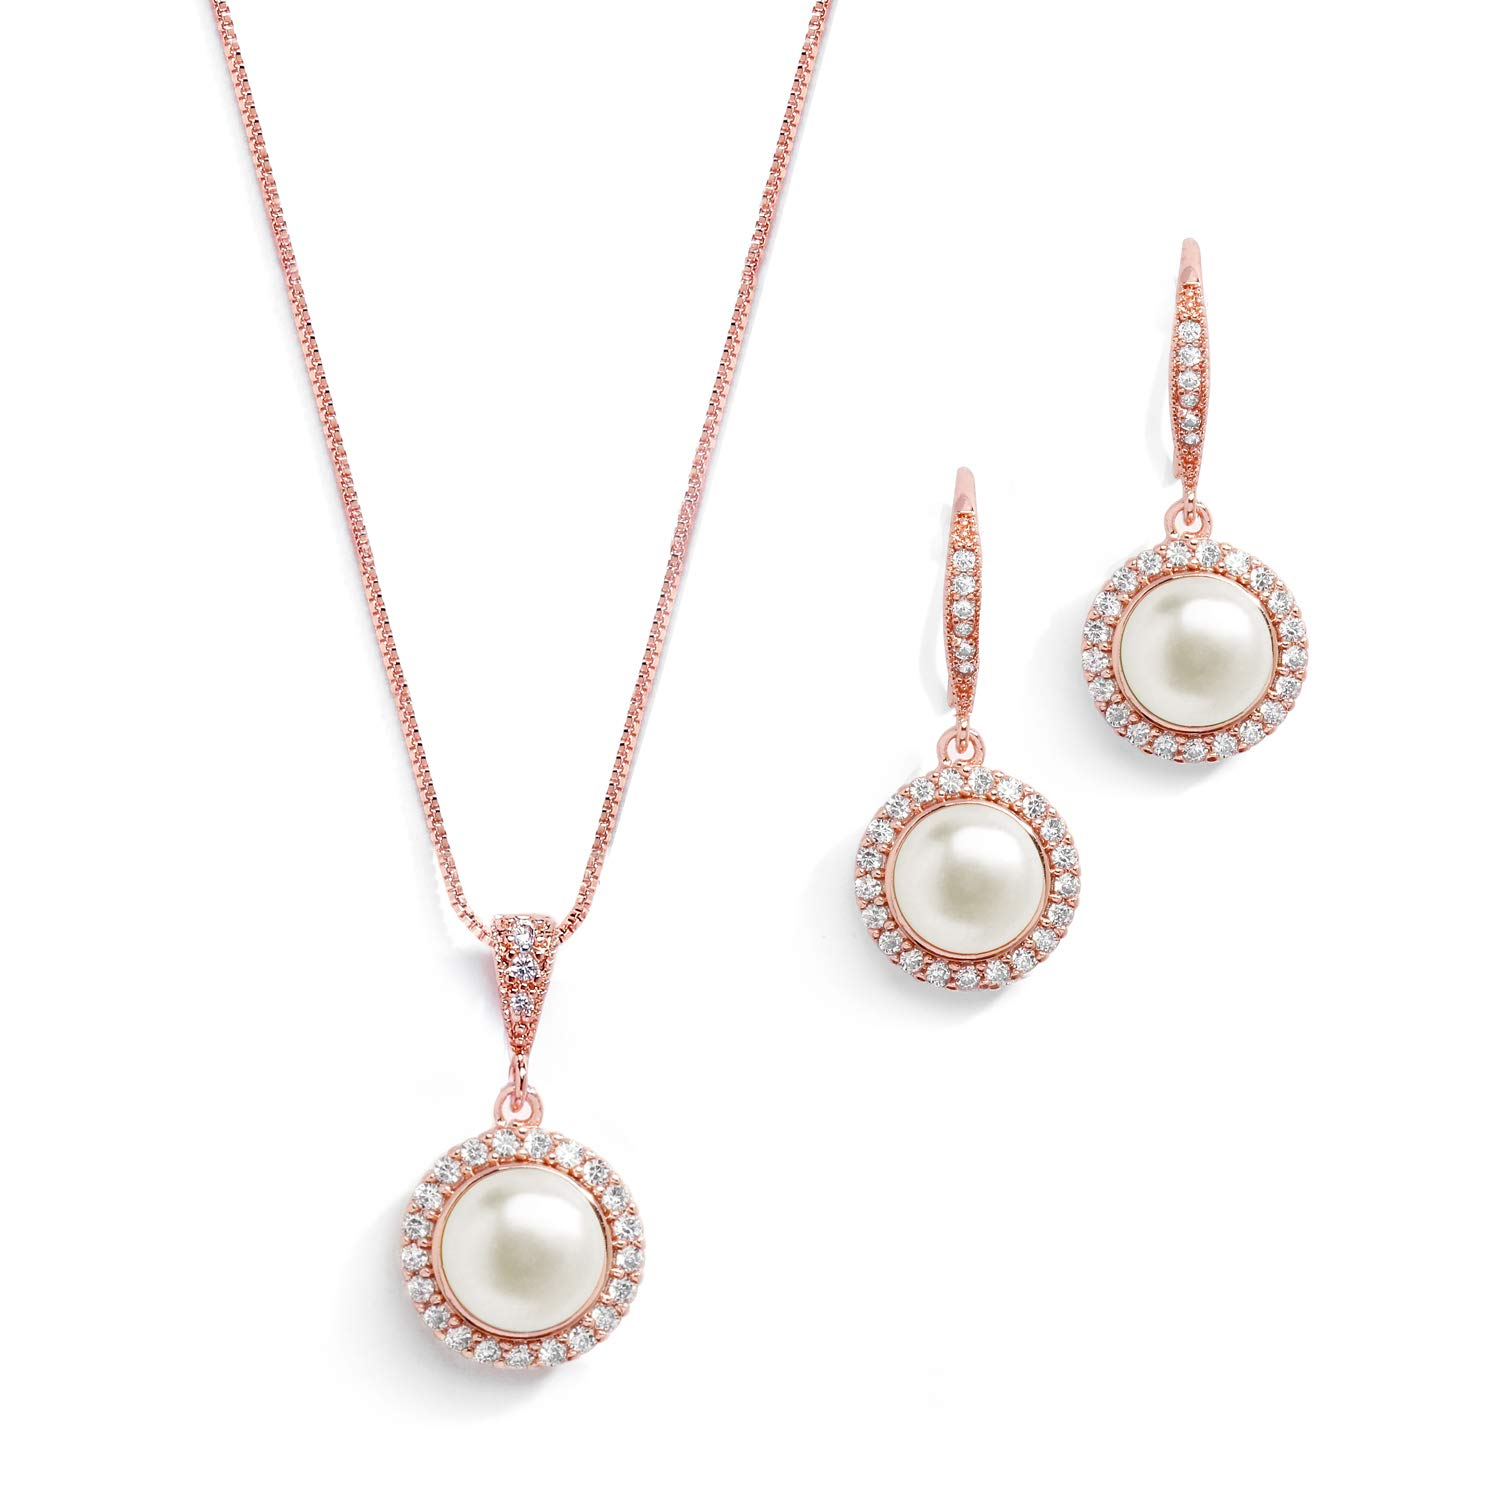 Mariell Freshwater Pearl Wedding Necklace & Earrings Rose Gold Halo Jewelry Set for Bridesmaids & Brides